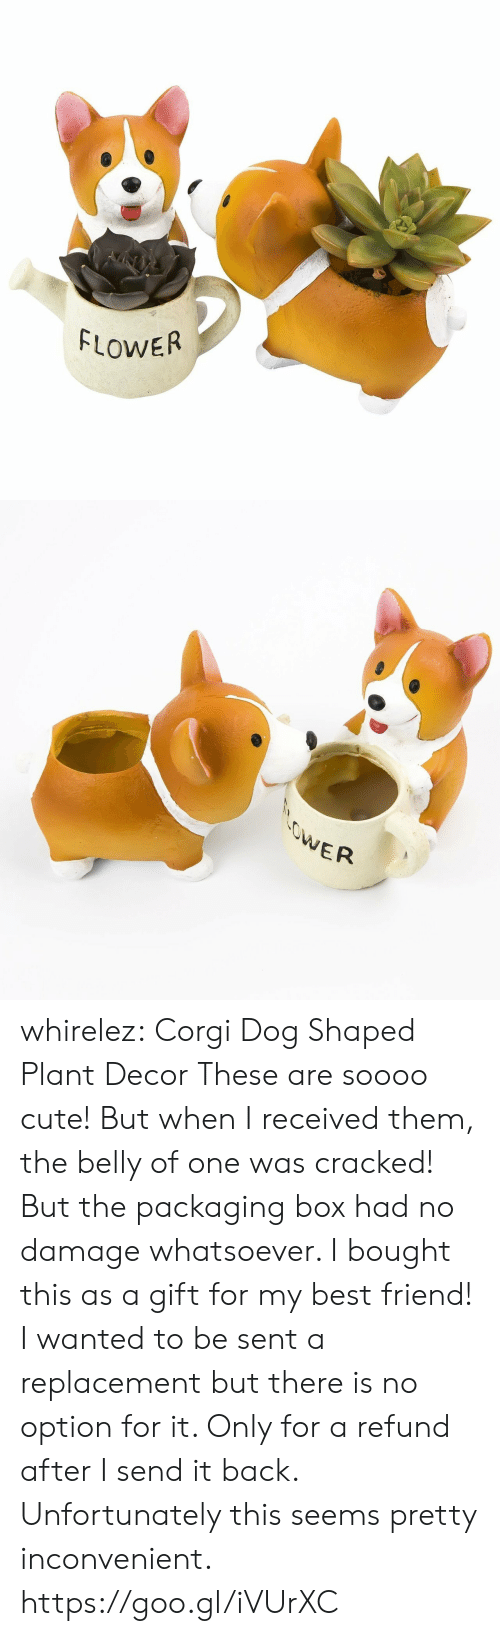 Best Friend, Corgi, and Cute: FLOWER   ER whirelez:    Corgi Dog Shaped Plant Decor    These are soooo cute! But when I received them, the belly of one was cracked! But the packaging box had no damage whatsoever. I bought this as a gift for my best friend! I wanted to be sent a replacement but there is no option for it. Only for a refund after I send it back. Unfortunately this seems pretty inconvenient.  https://goo.gl/iVUrXC